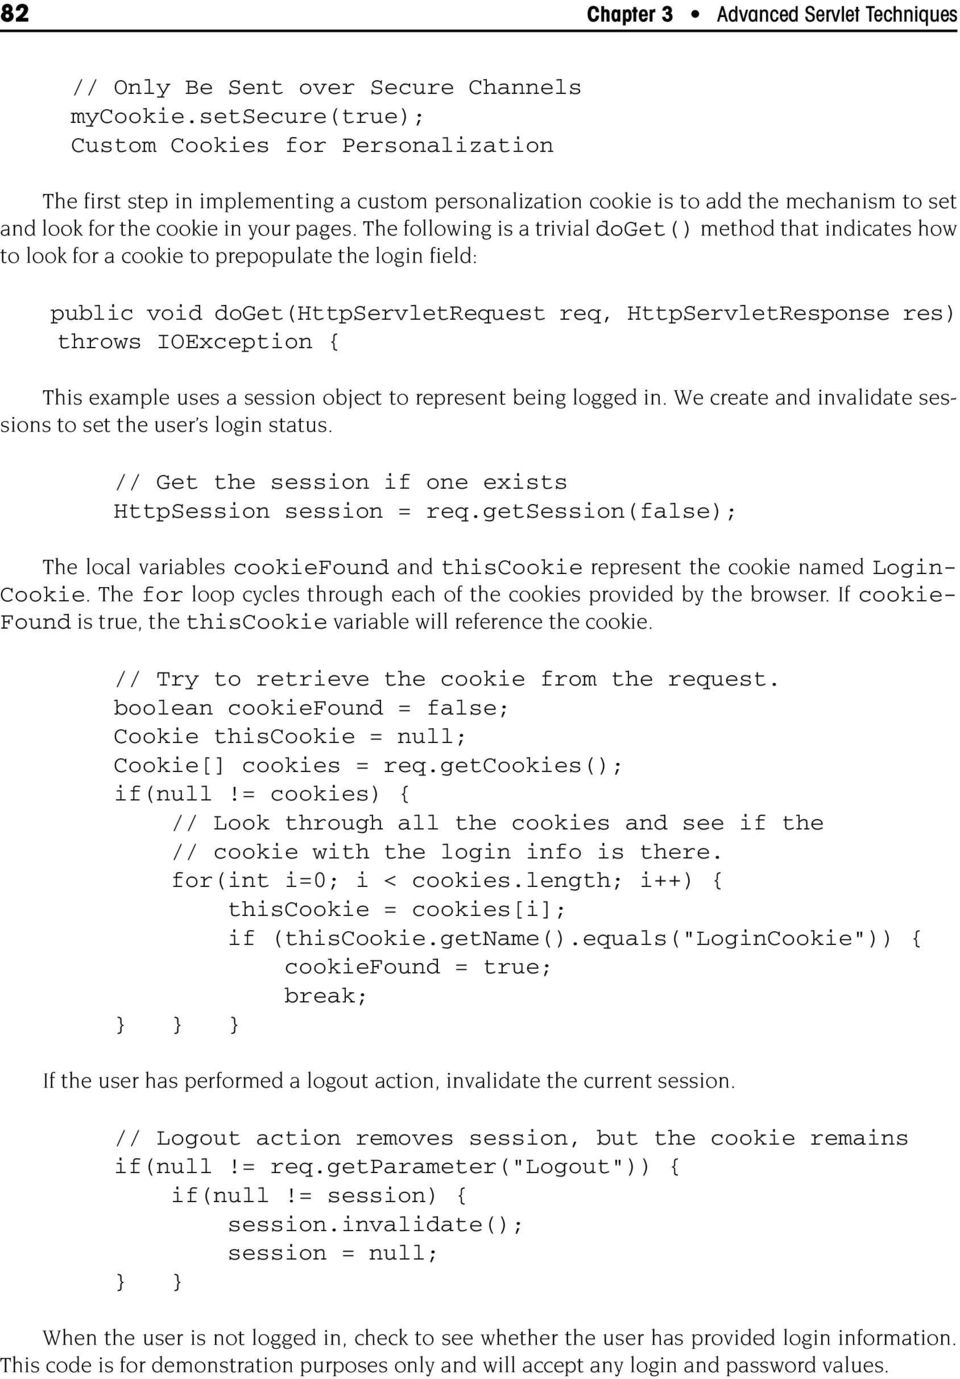 The following is a trivial doget() method that indicates how to look for a cookie to prepopulate the login field: public void doget(httpservletrequest req, HttpServletResponse res) throws IOException